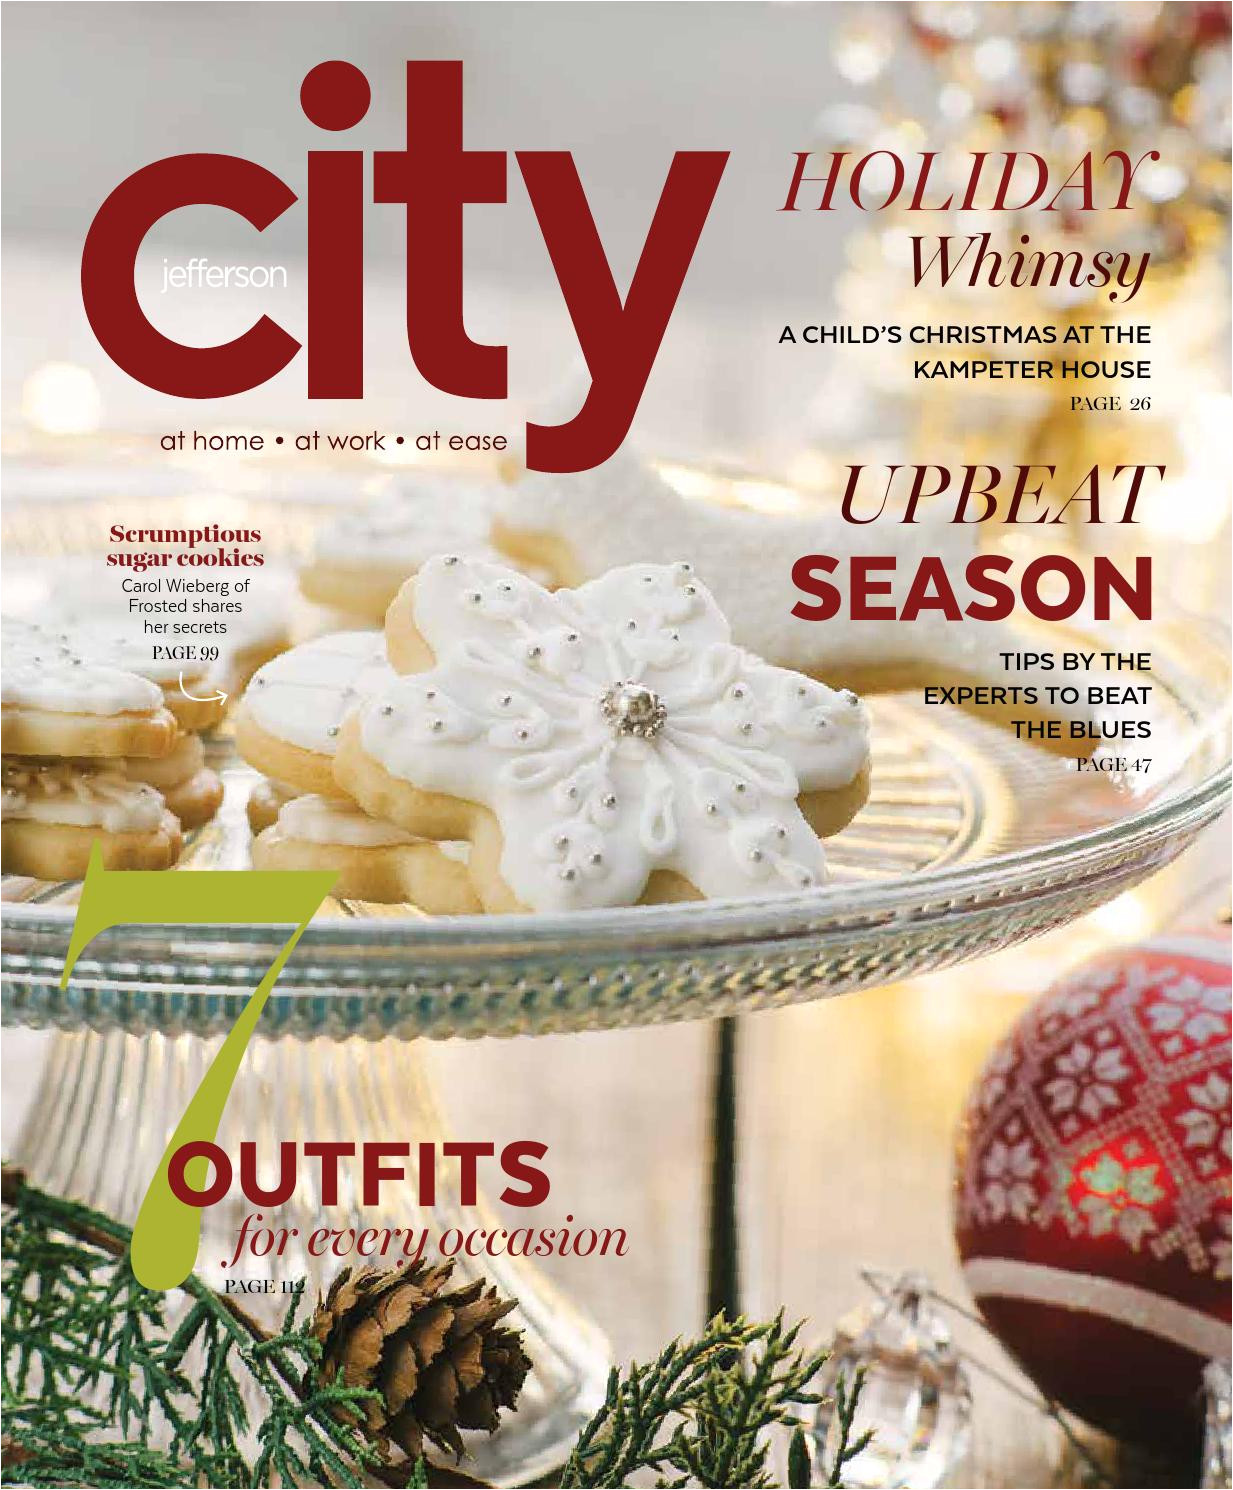 jefferson city magazine november december 2015 by business times company issuu